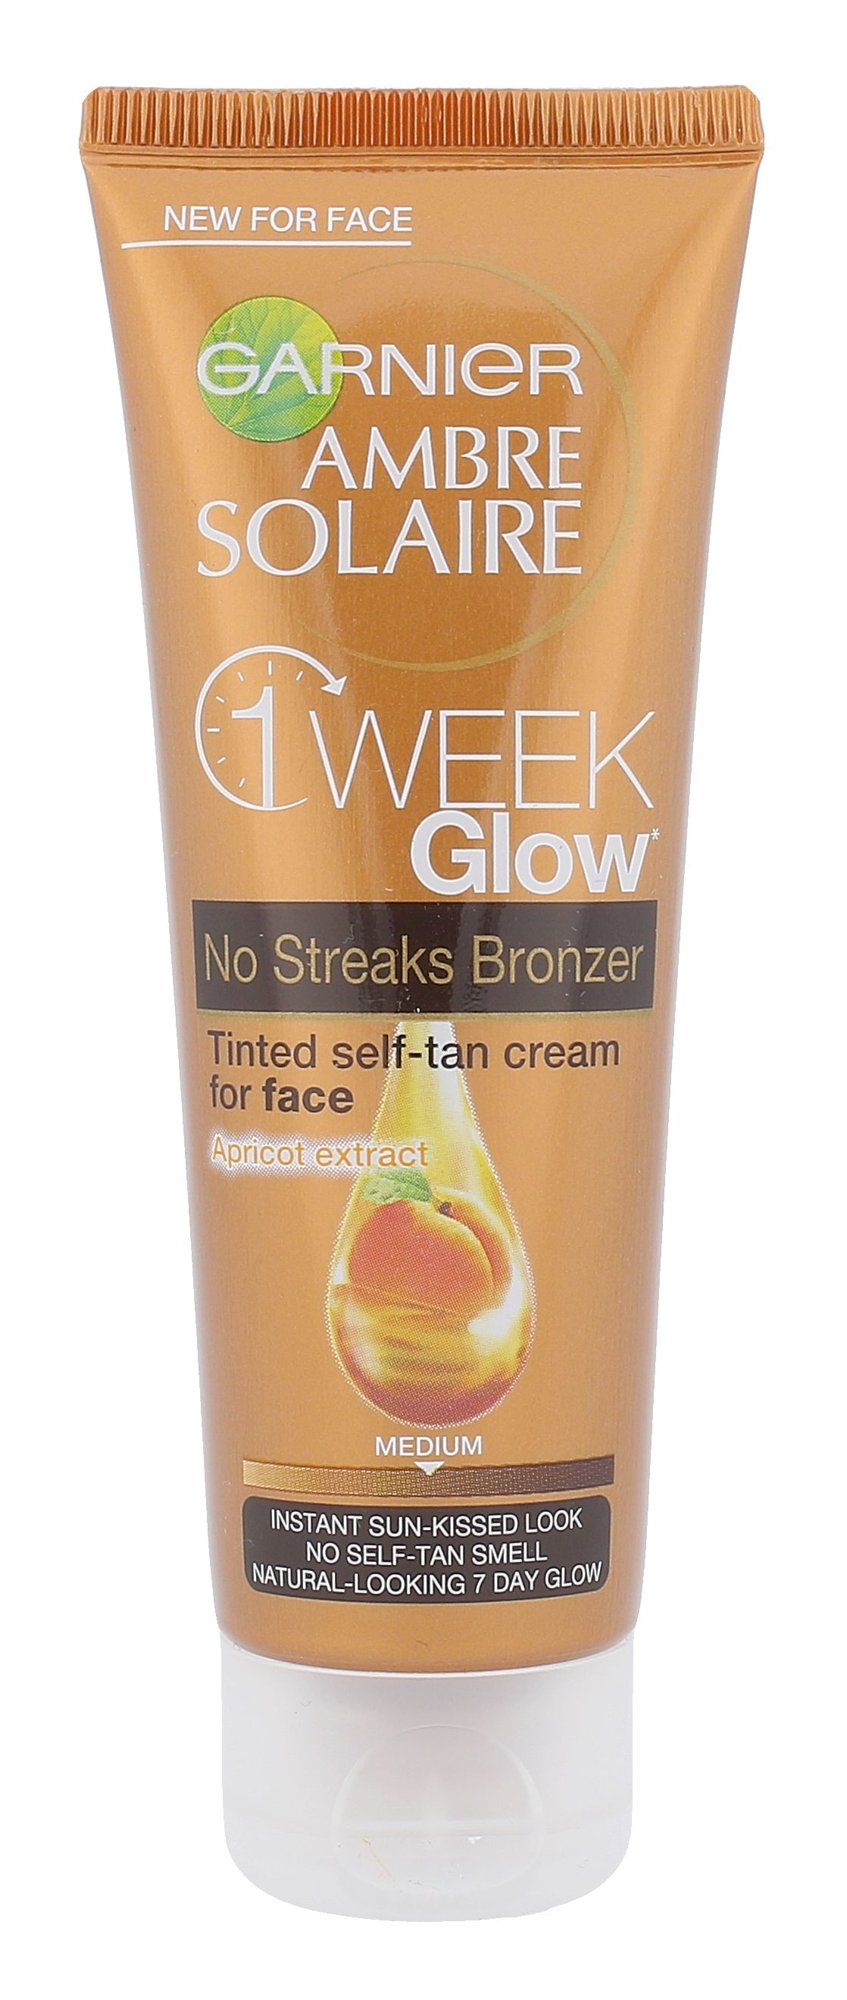 Garnier Ambre Solaire One Week Glow Self-Tan Face Cream Cosmetic 50ml Medium